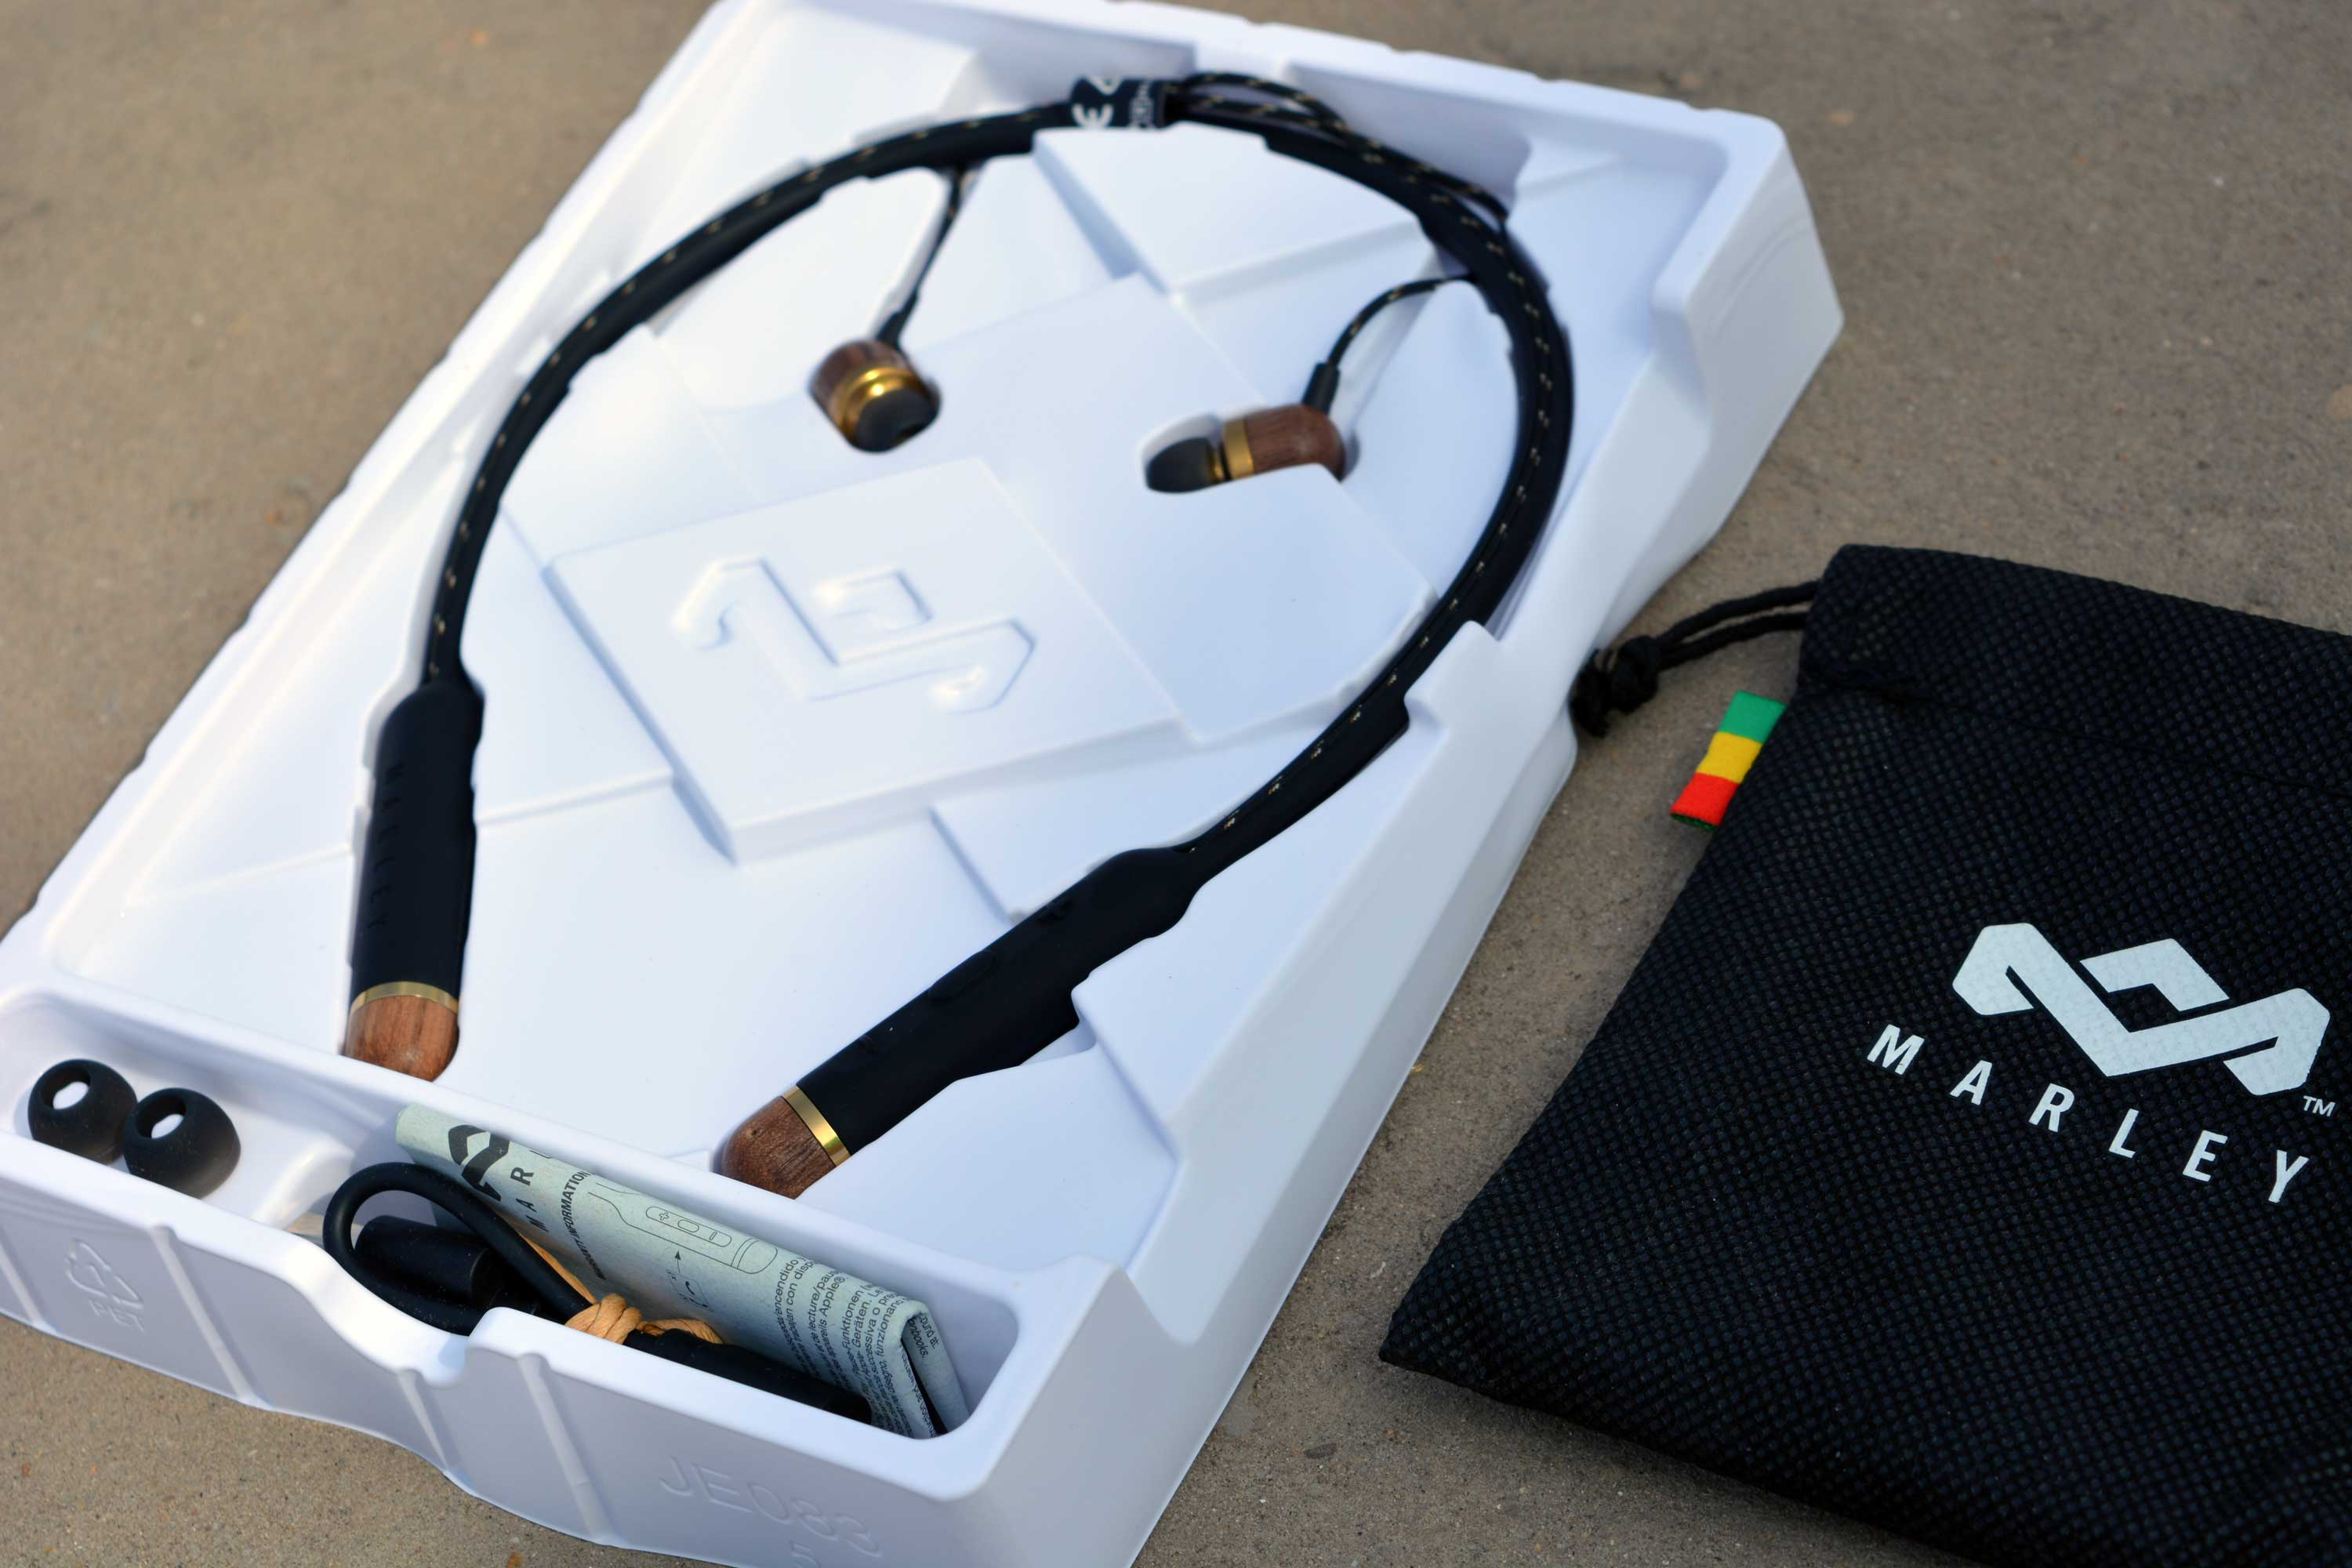 smiles jamaica 2 - House of Marley Smile Jamaica Wireless Earphone Review